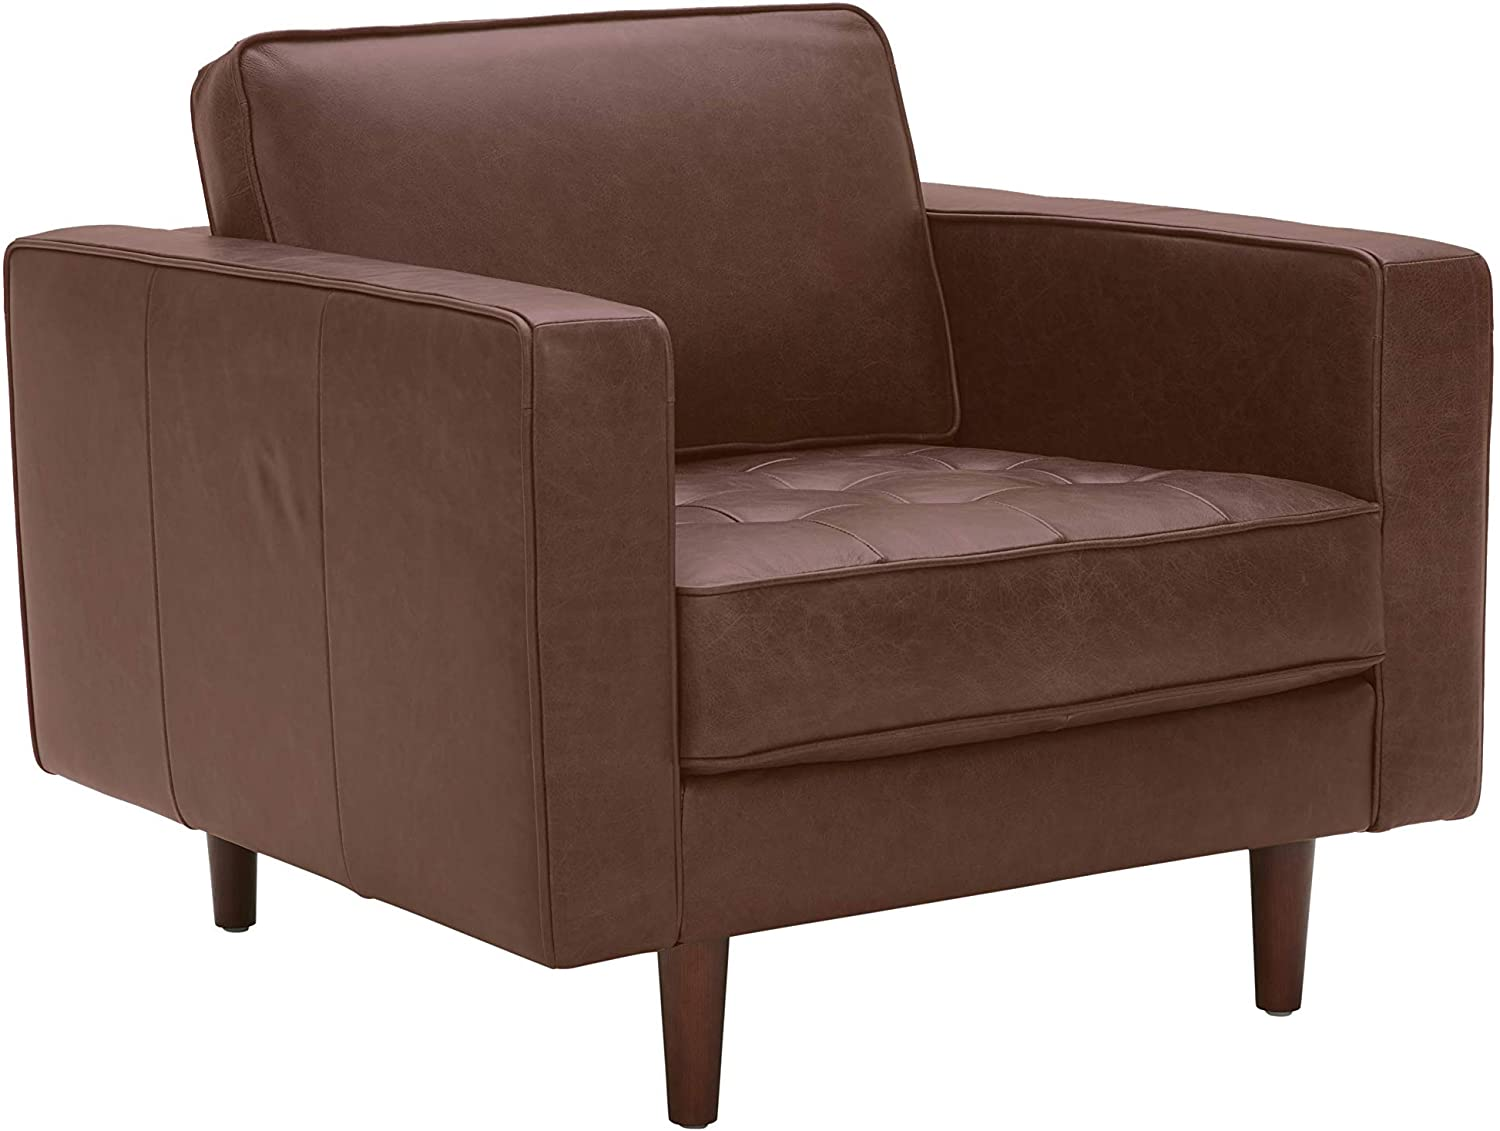 Amazon Brand – Rivet Aiden Mid-Century Modern Tufted Leather Accent Chair, 35.4